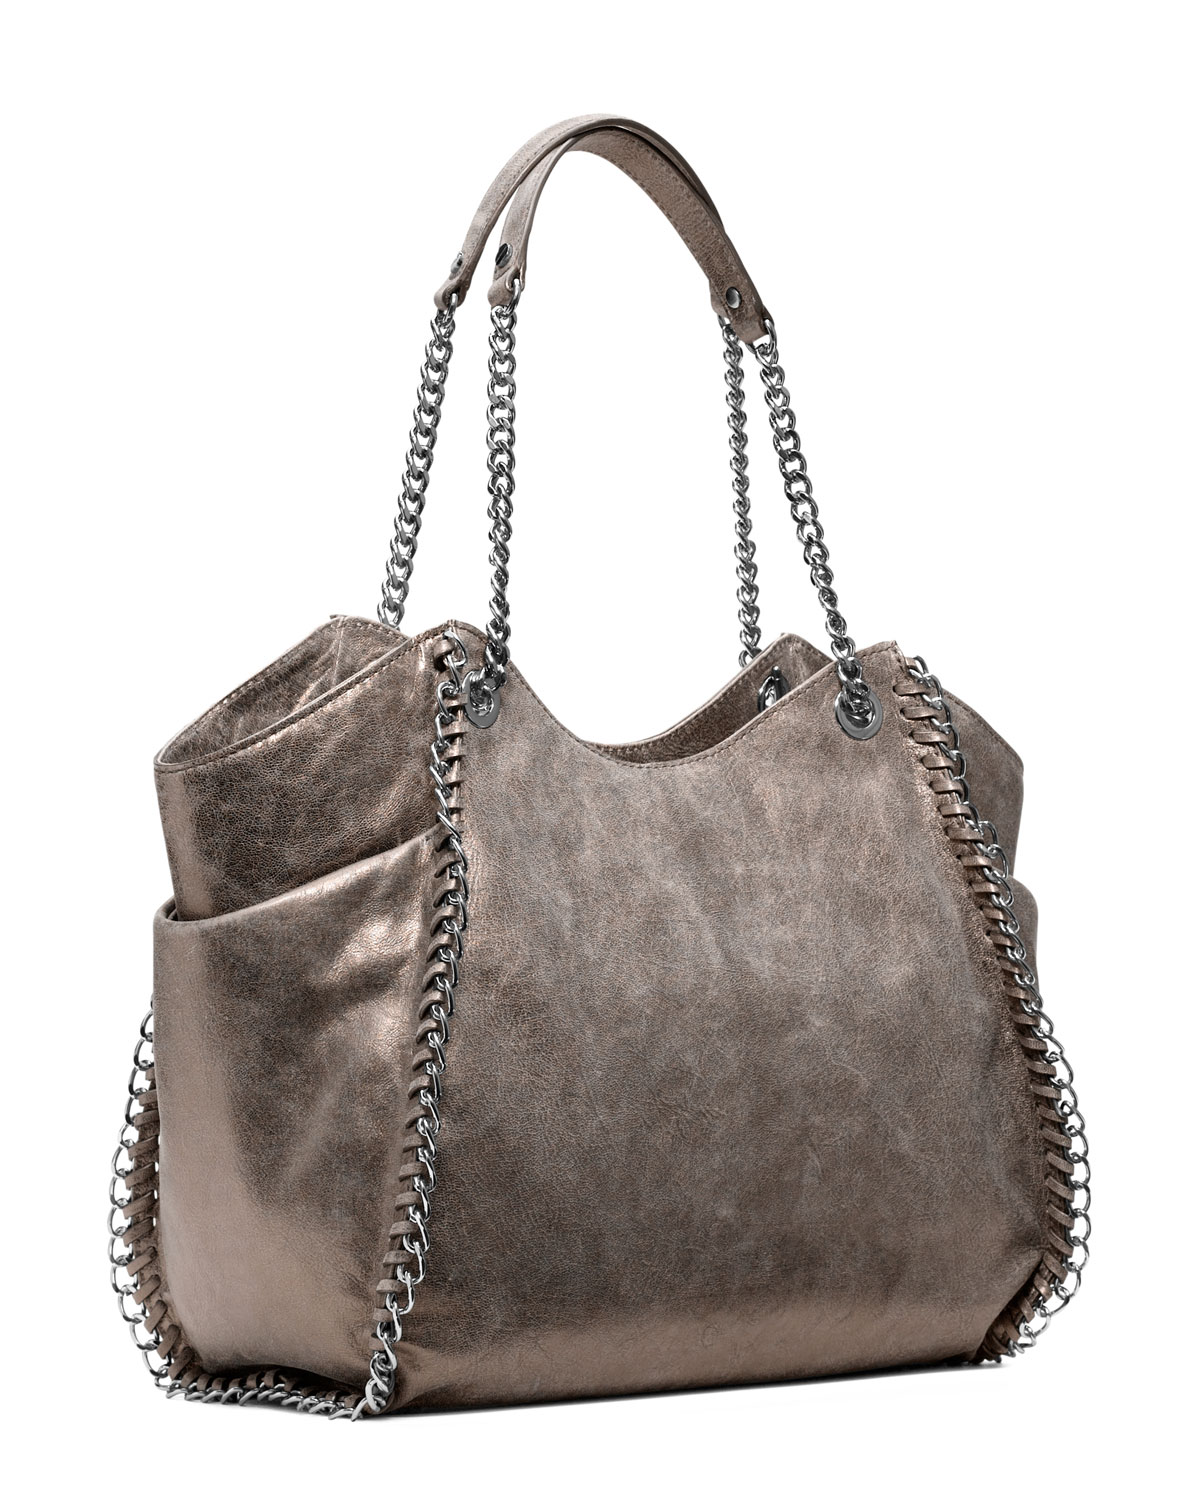 7f8e2fb0ee10 ... good lyst michael kors large chelsea metallic tote in metallic 988e0  c6f11